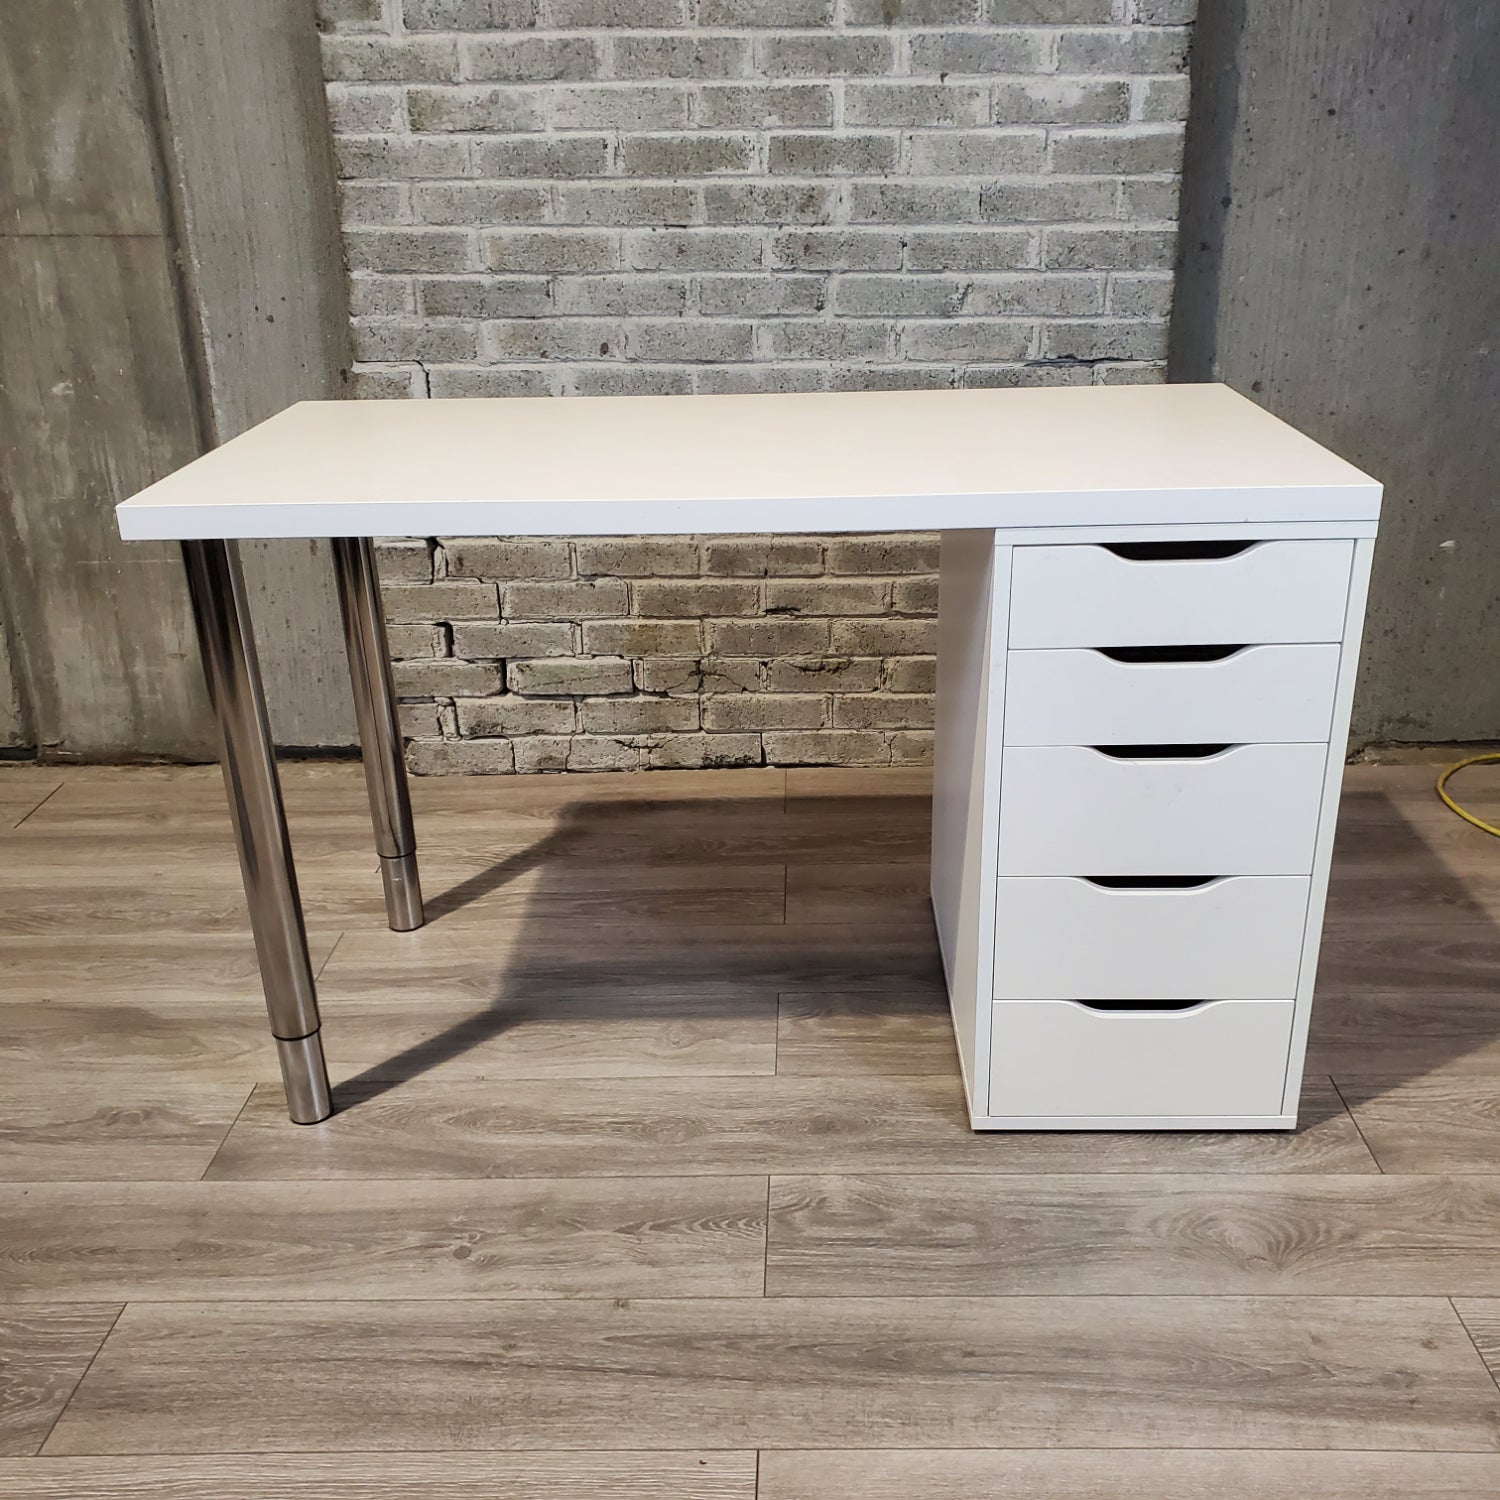 Used White Post Leg Desk with Drawers - Duckys Office Furniture